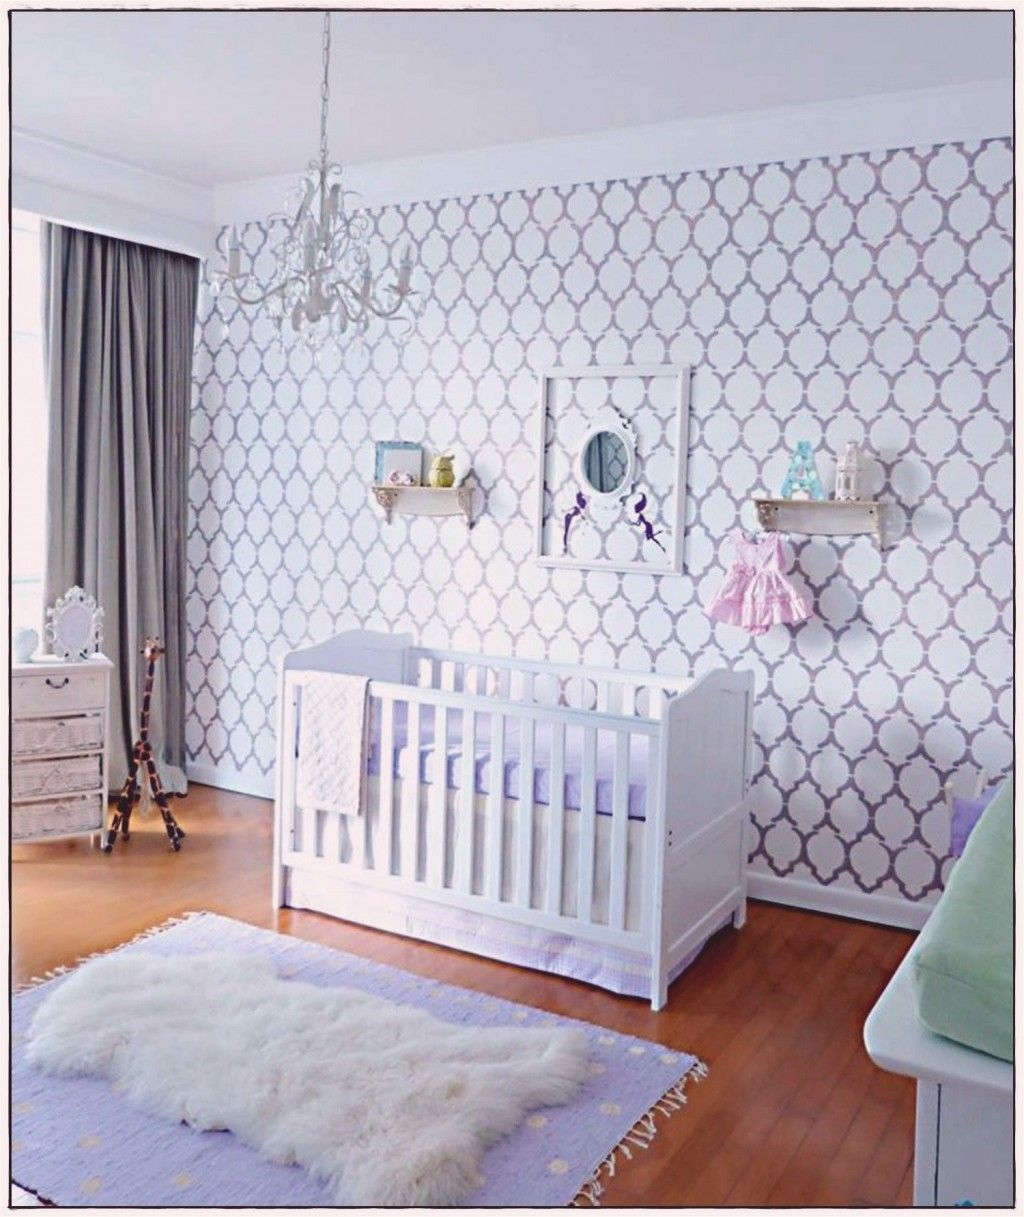 Decoration Chambre Licorne Génial Chambre Licorne Bebe Decoration De Chambre Kitchen Design